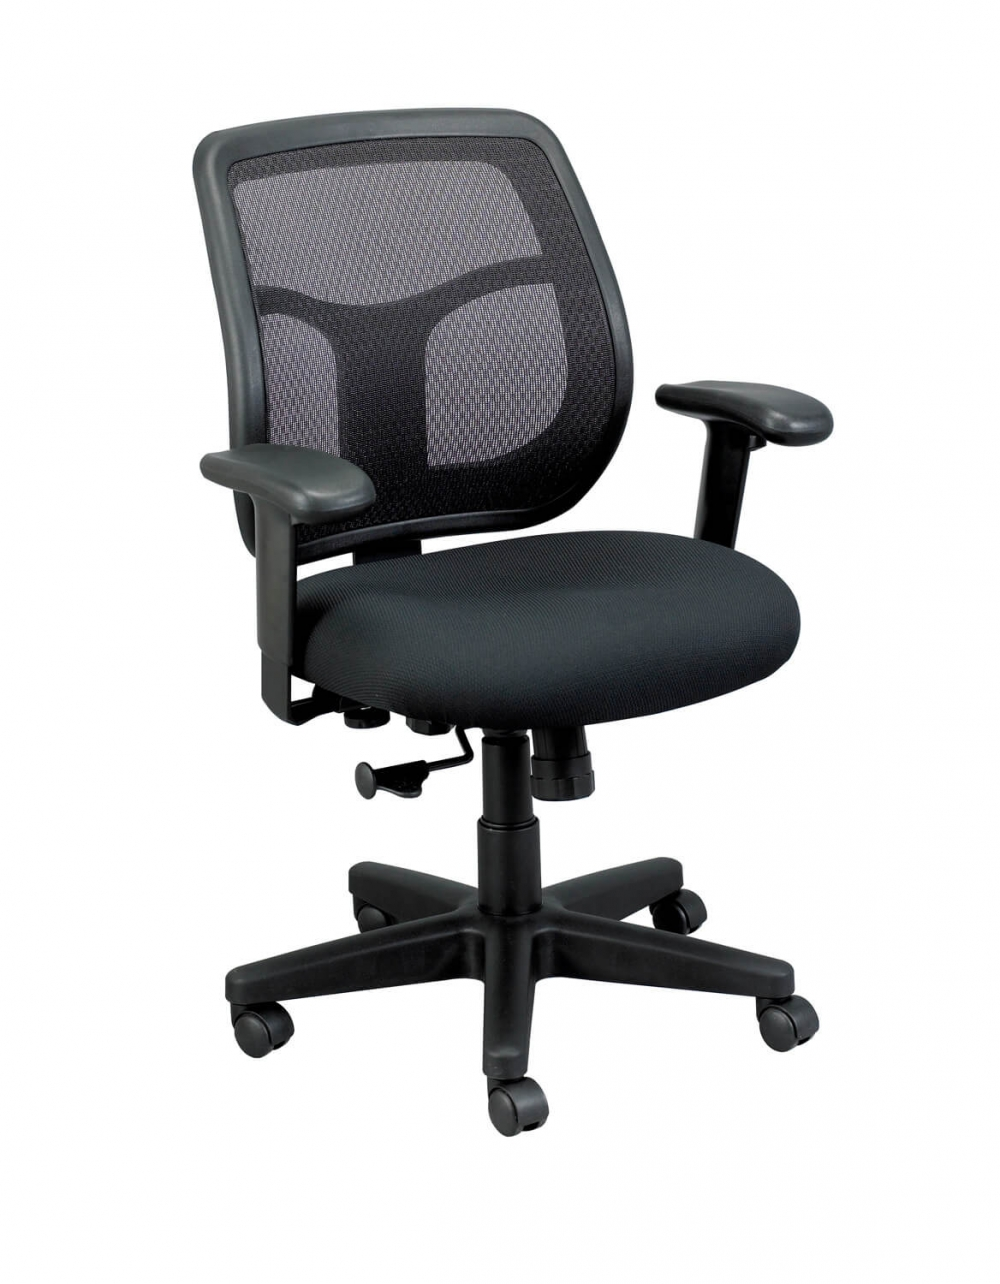 office-furniture-chairs-office-task-chair.jpg